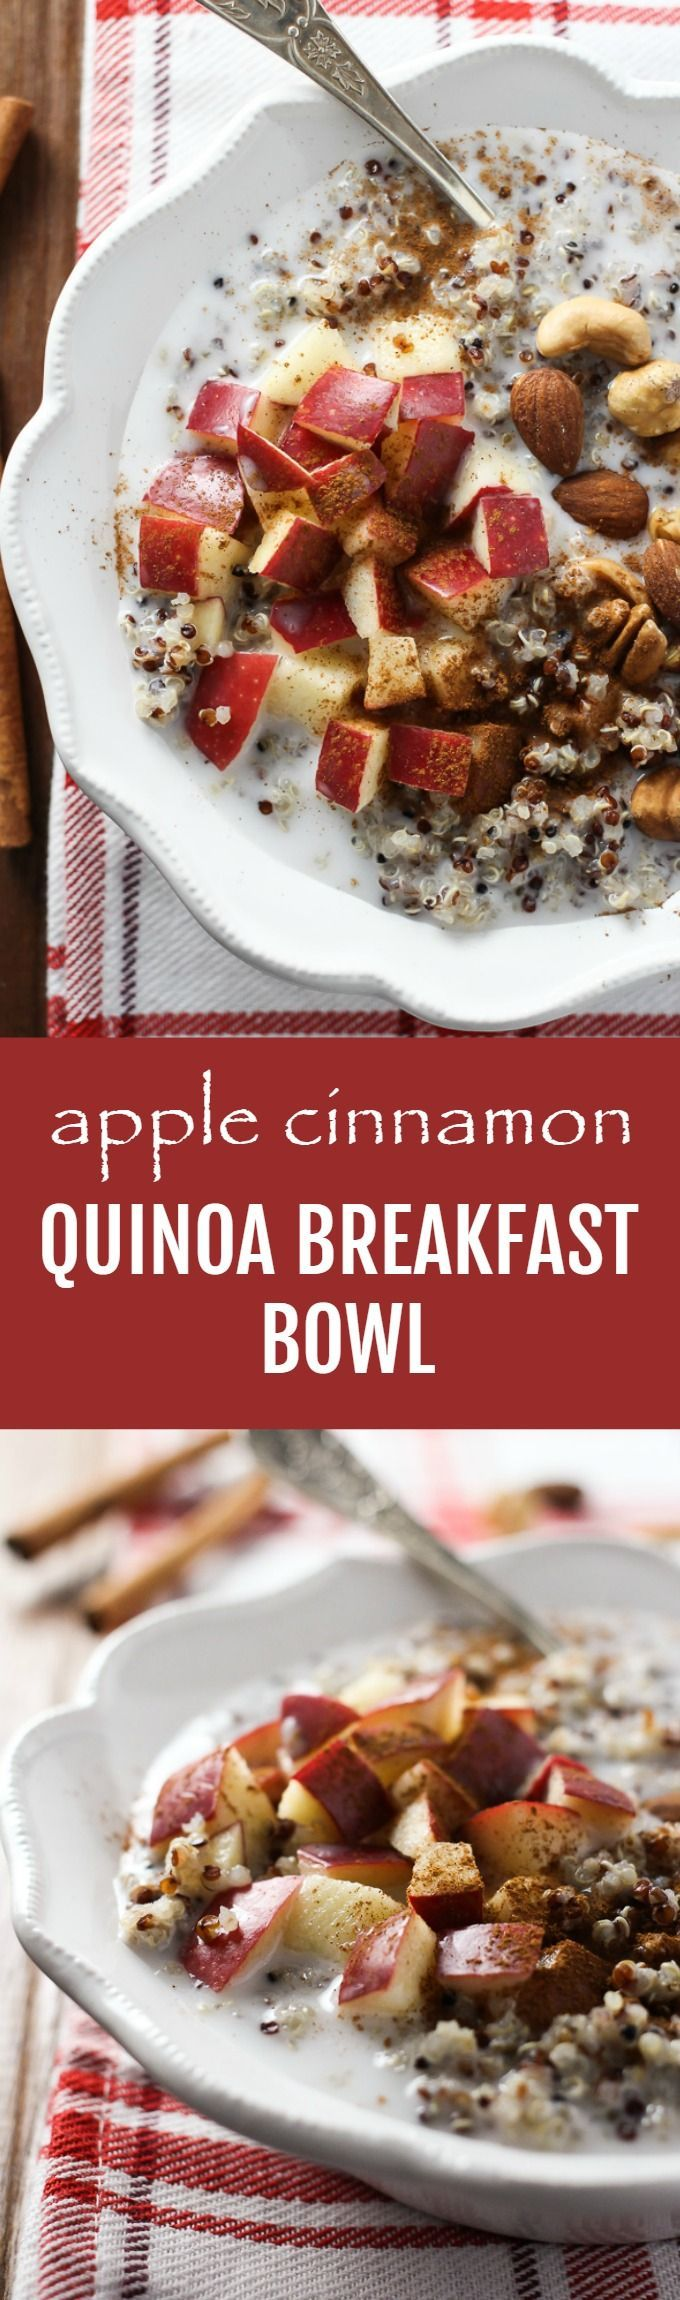 This Apple Cinnamon Quinoa Breakfast Bowl is very easy to put together. It's very filling and full of plant protein, fiber, healthy fat, vitamins, and minerals.